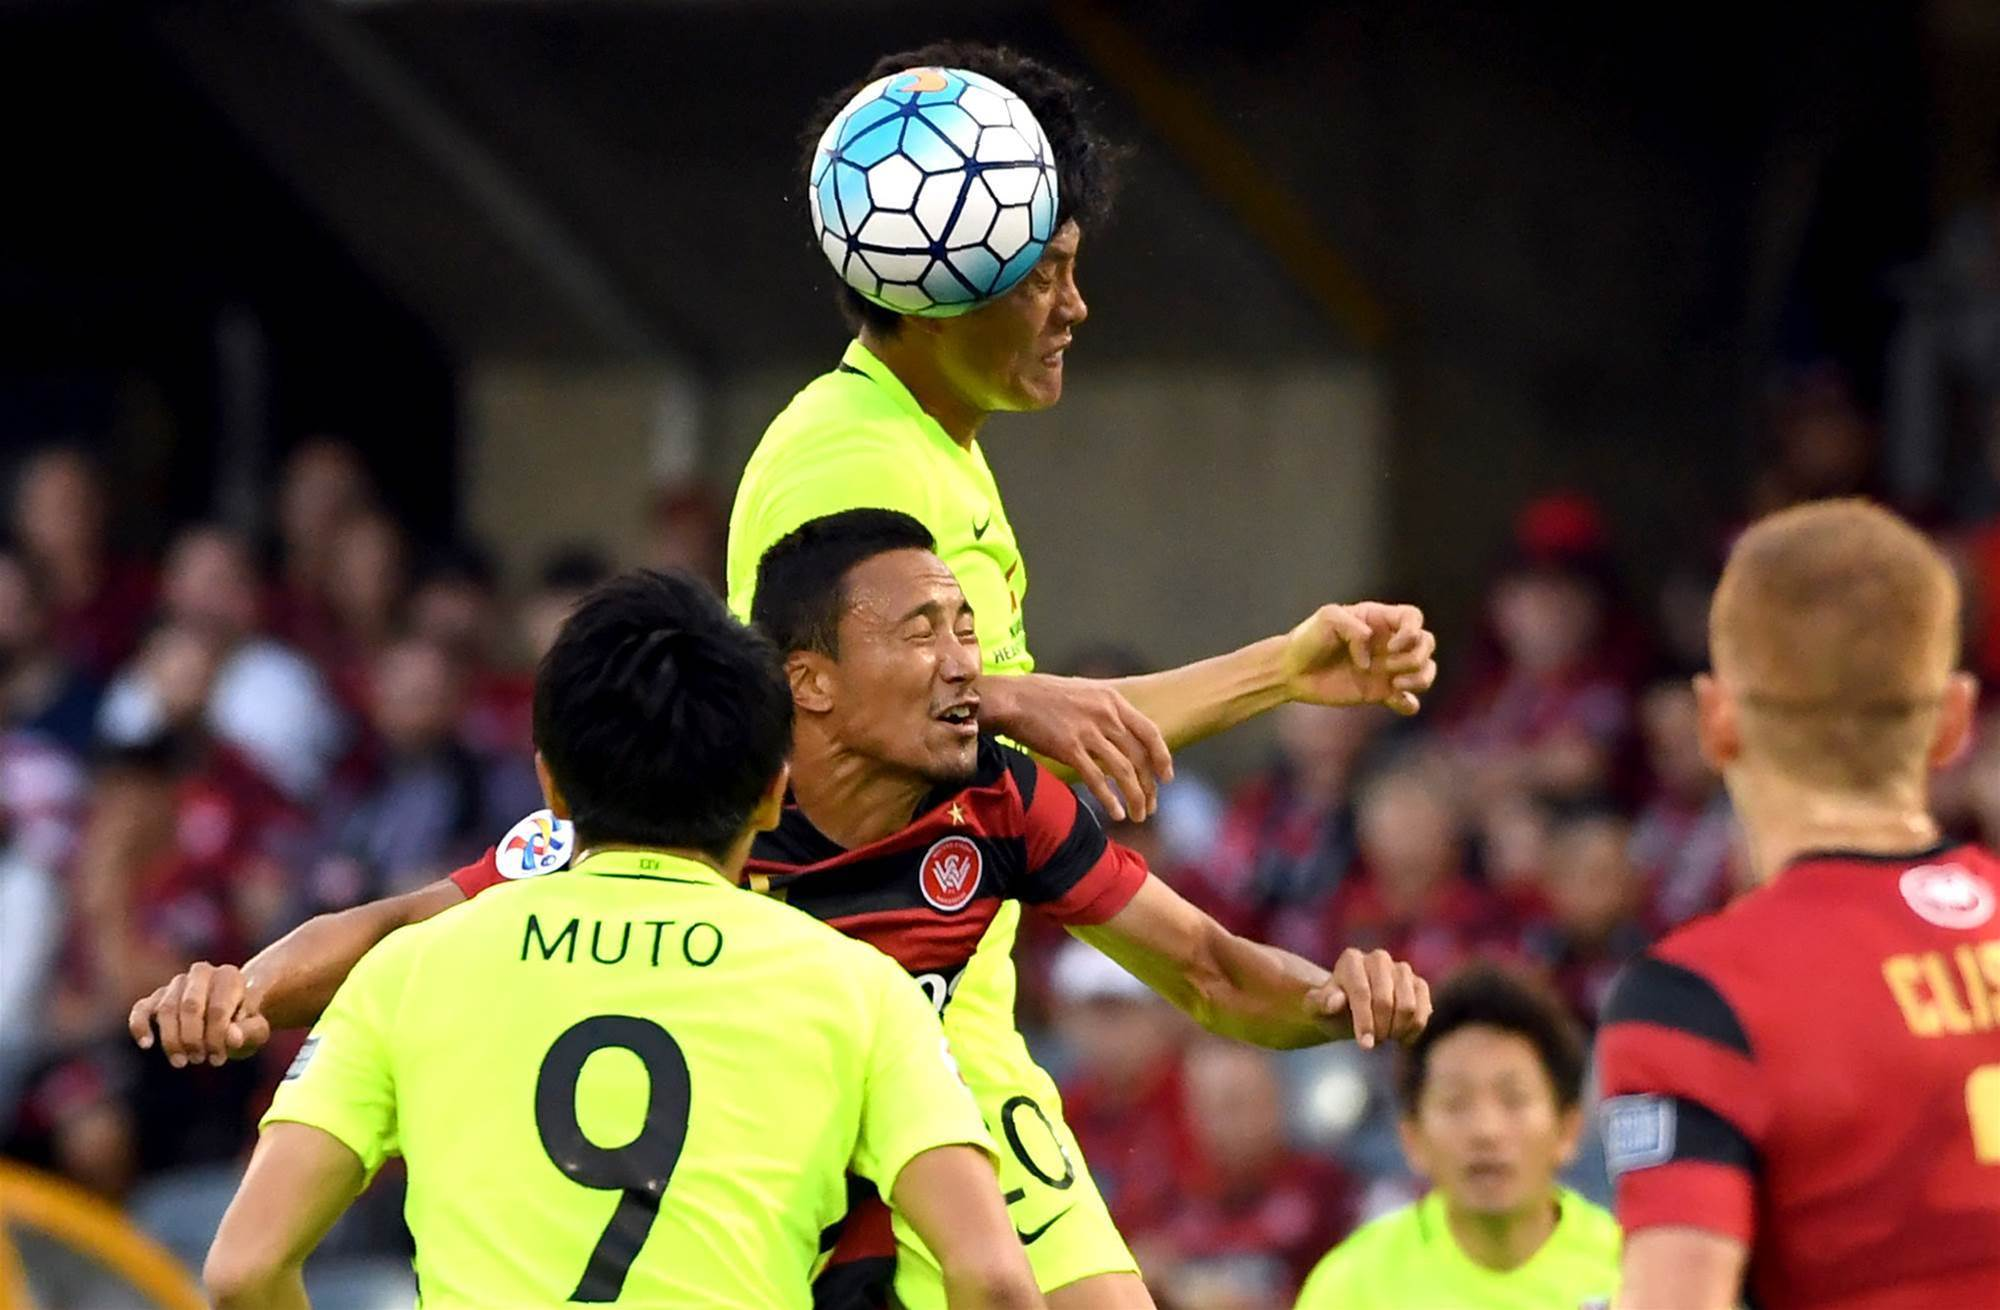 Wanderers v Urawa pic special